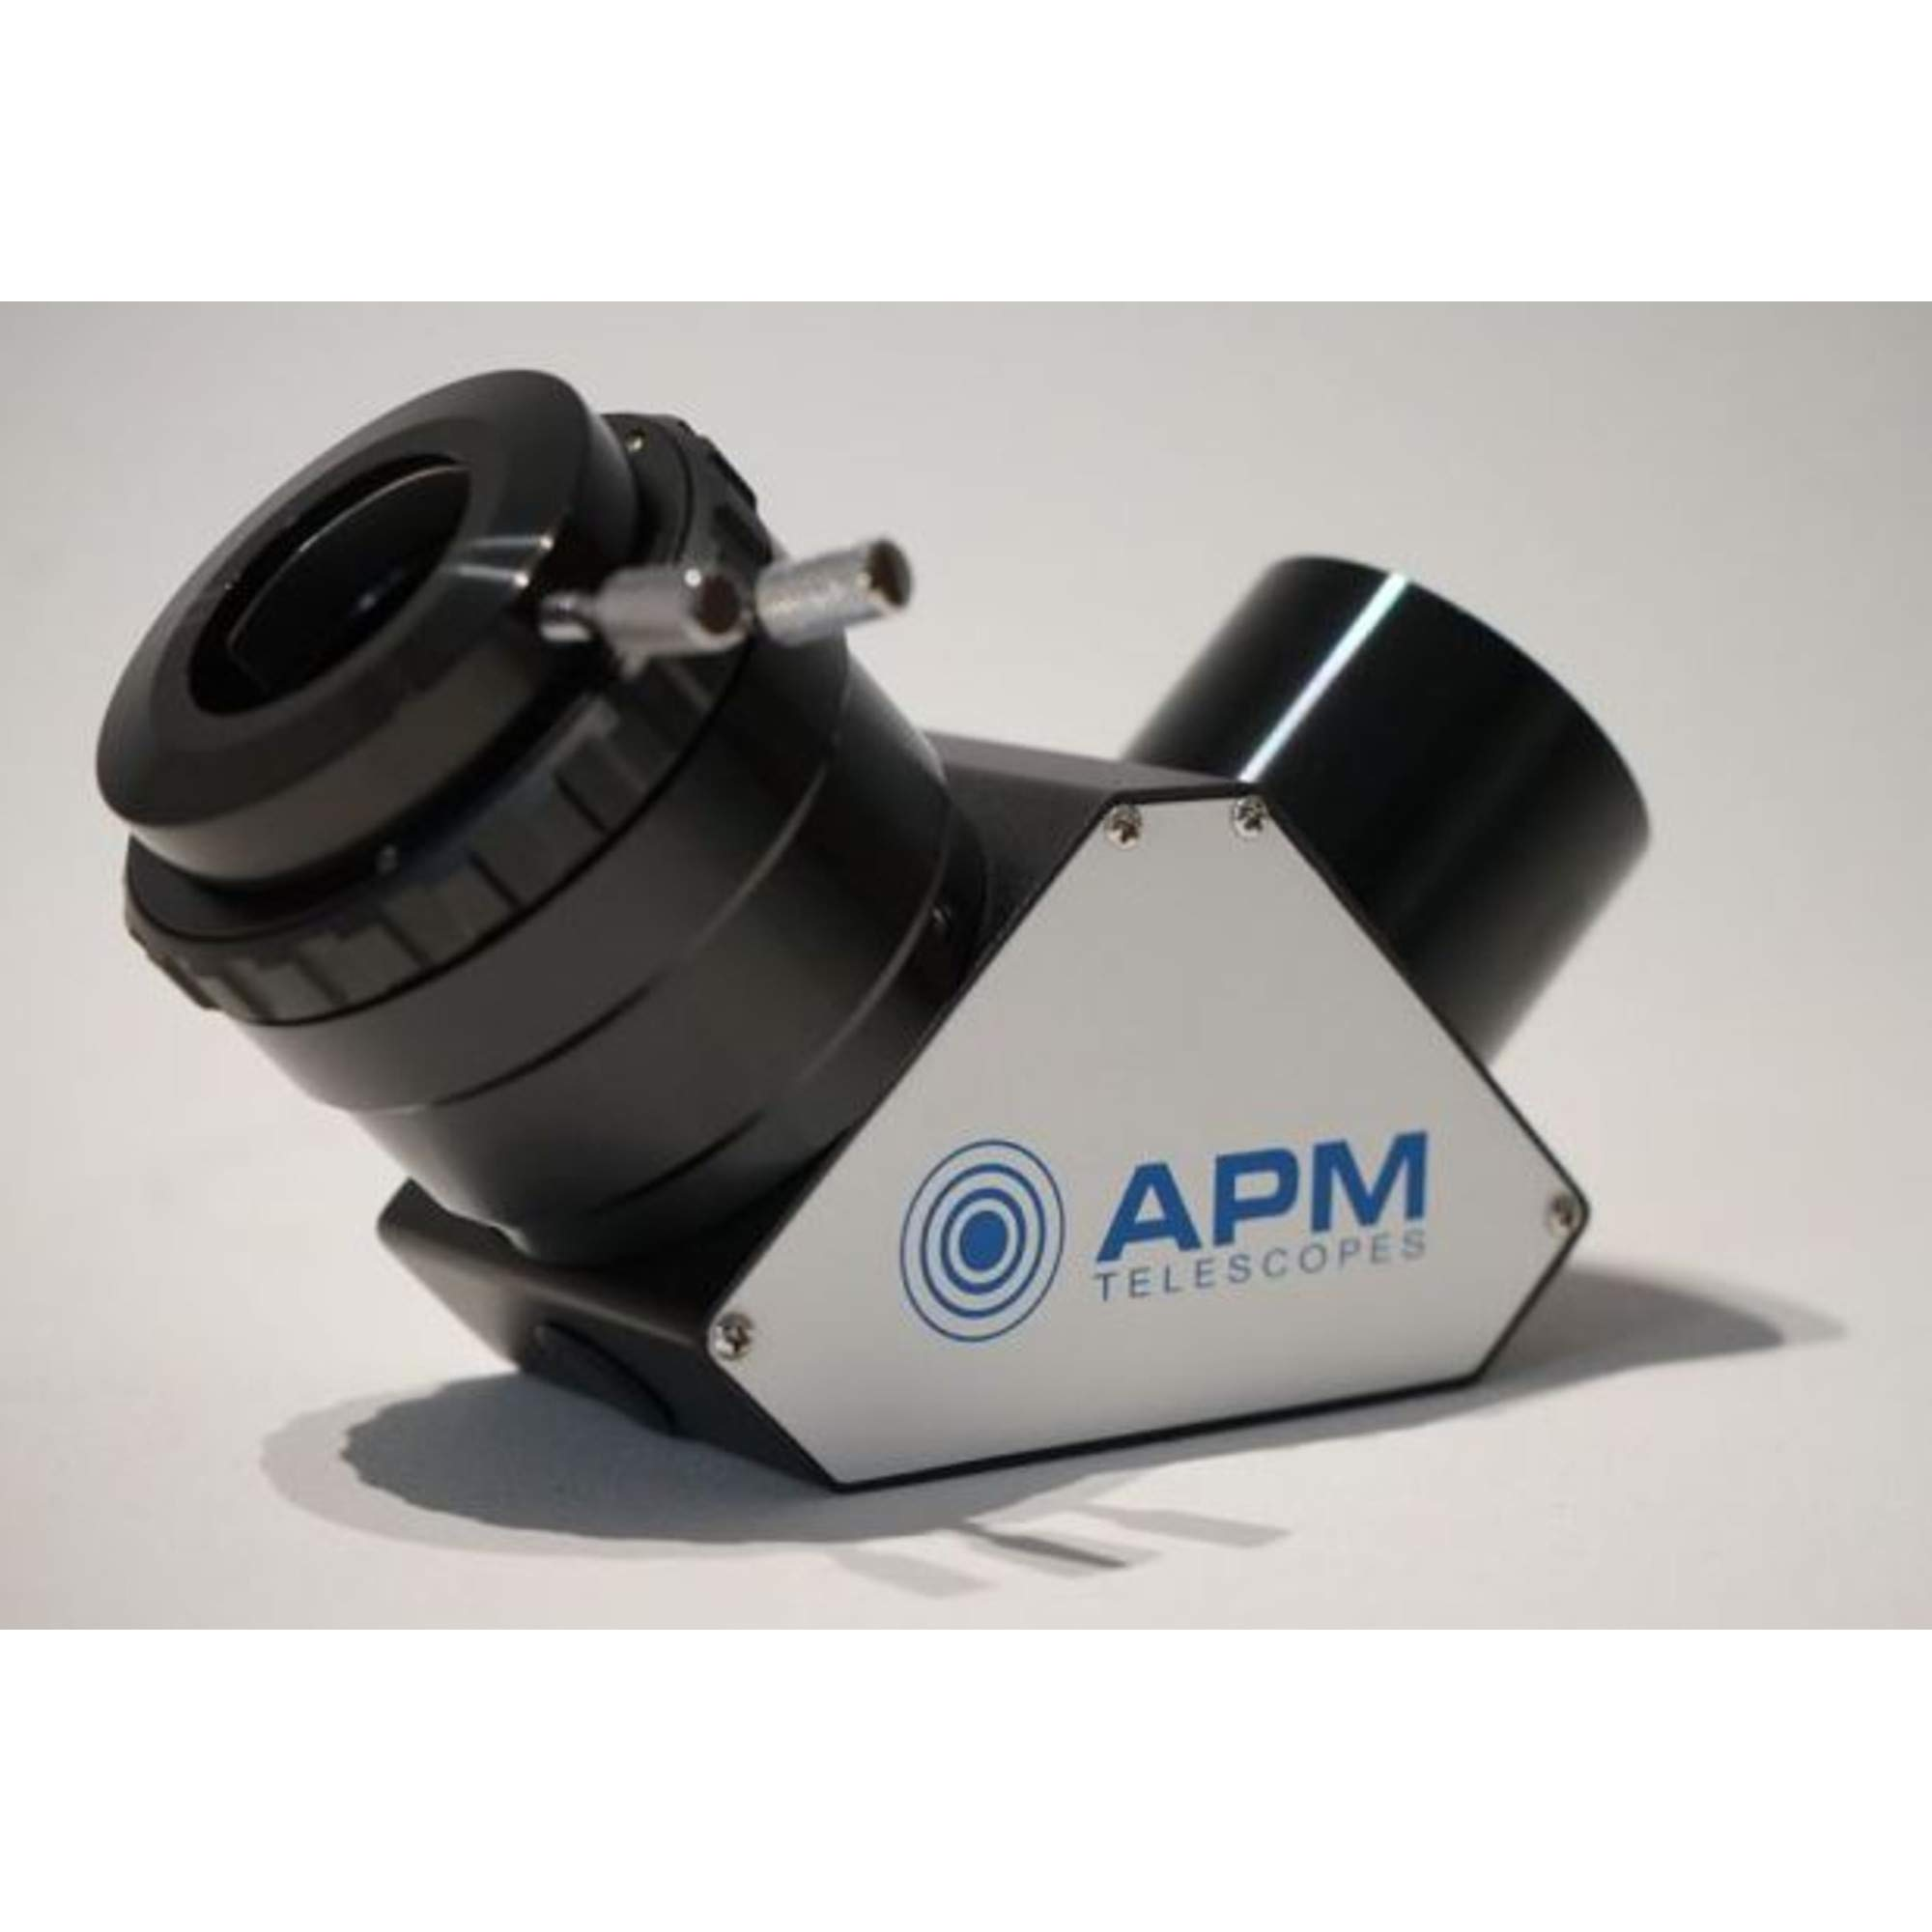 APM 2'' Erect Image Prism Diagonal with Fast Lock by APM